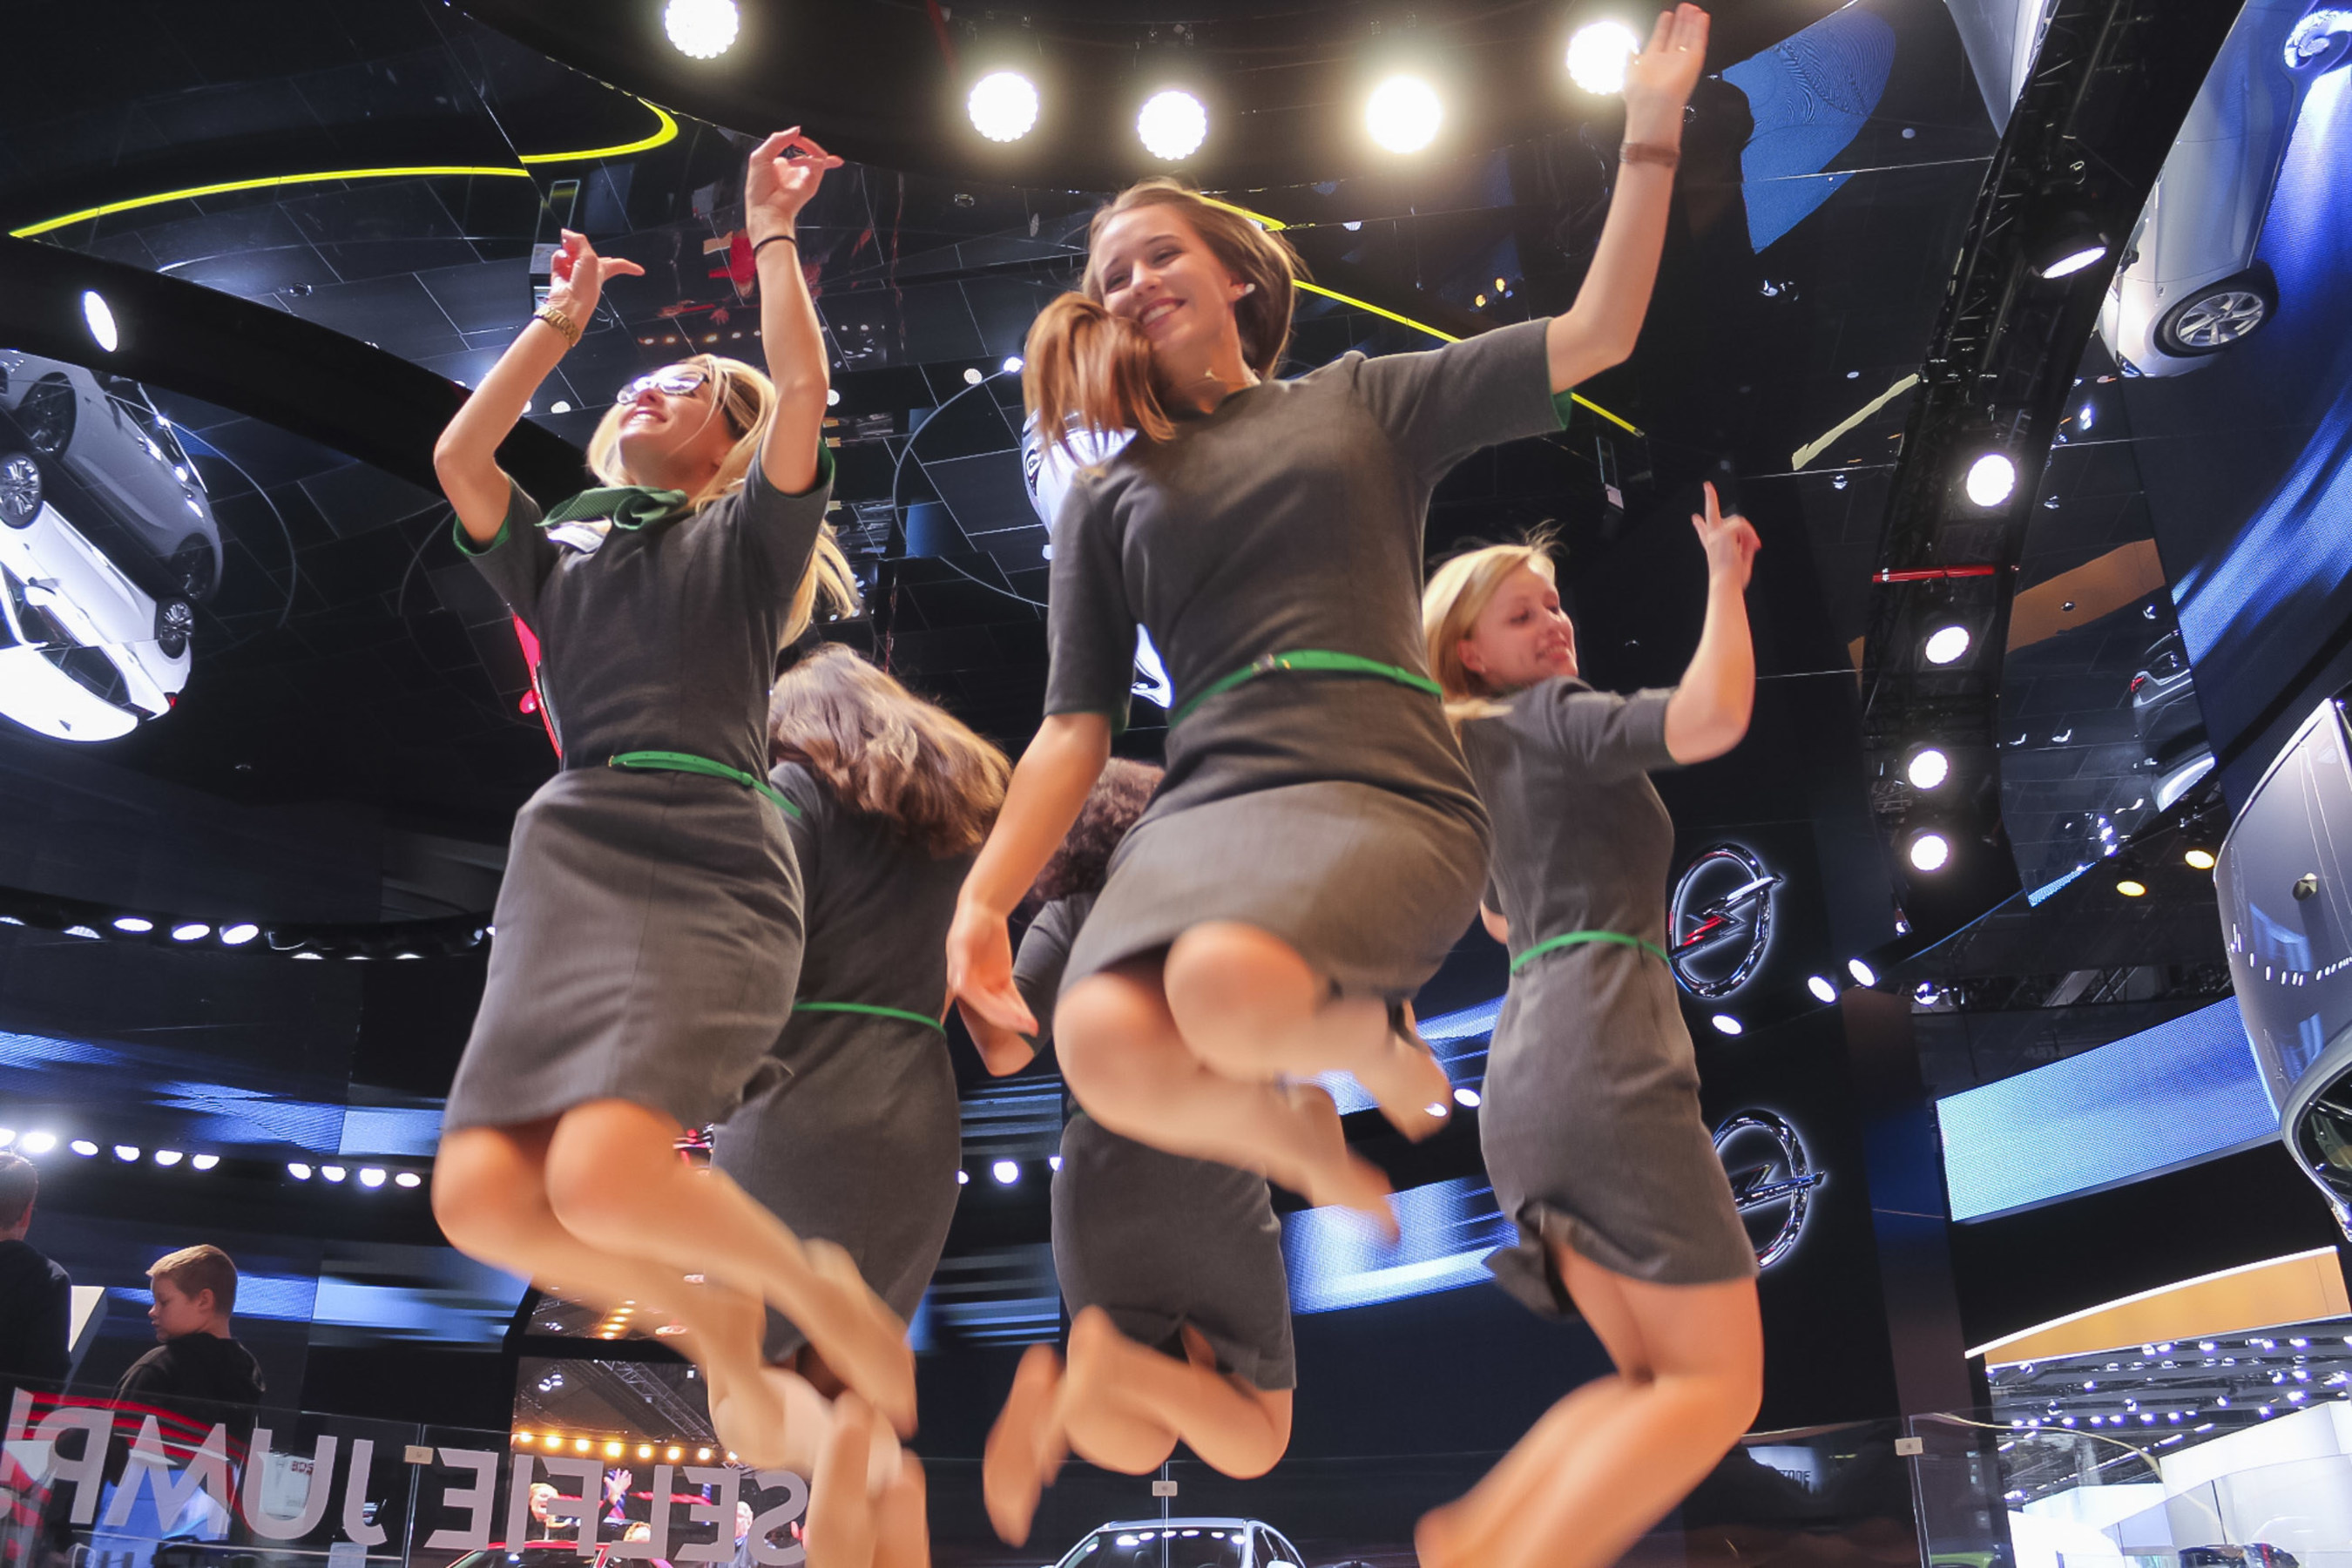 Opel Captured IAA 2015 Visitors Jumping with PRG